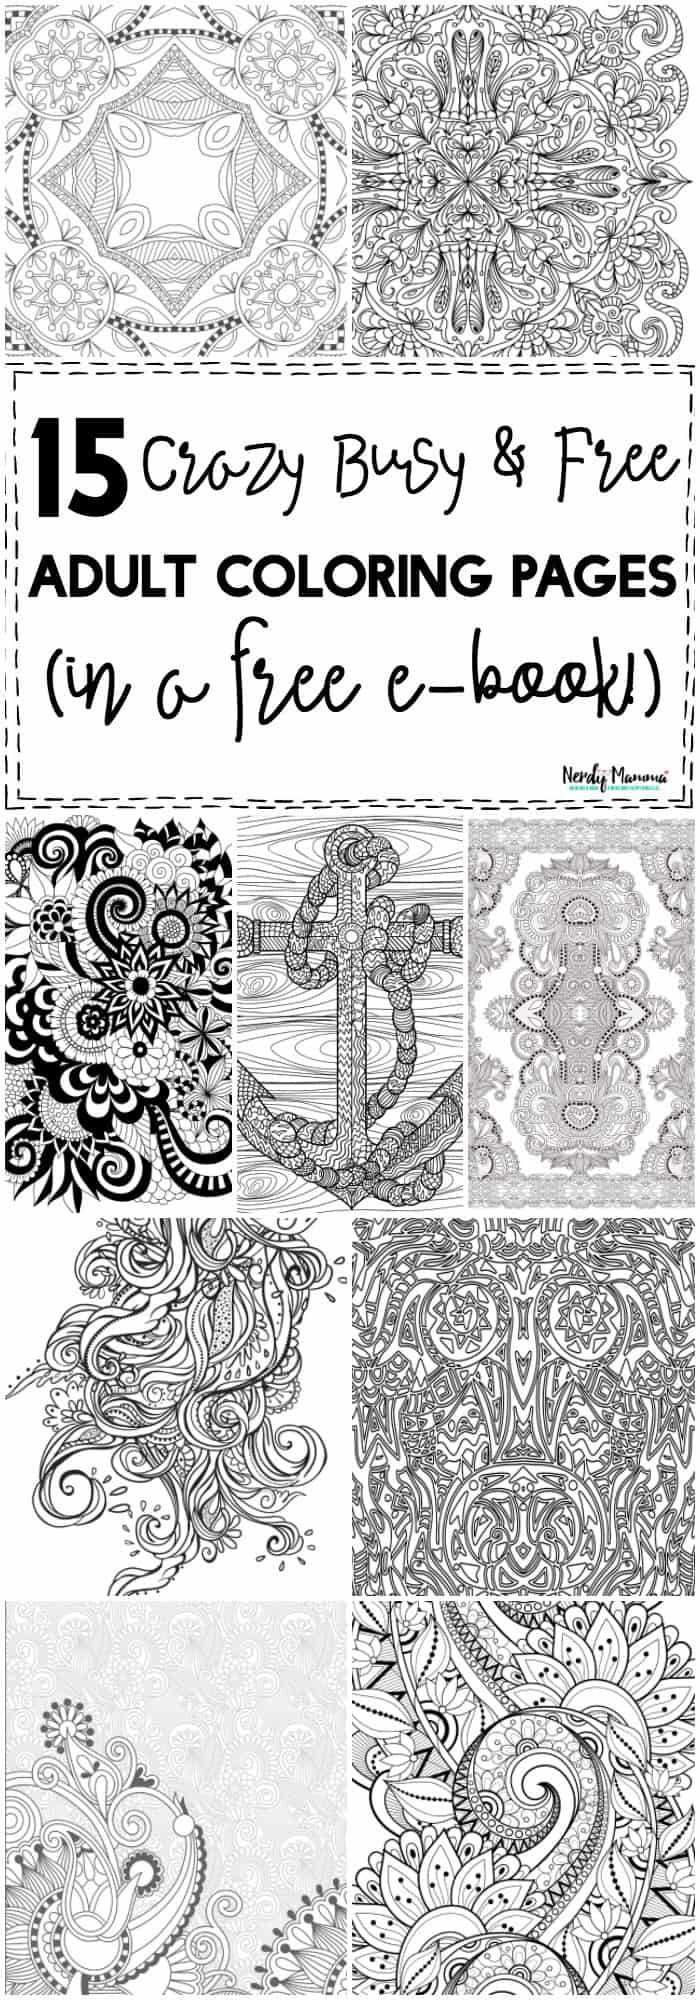 OMG! These are the BEST crazy busy & free adult coloring pages! They're in a cute little ebook too, SO EASY!